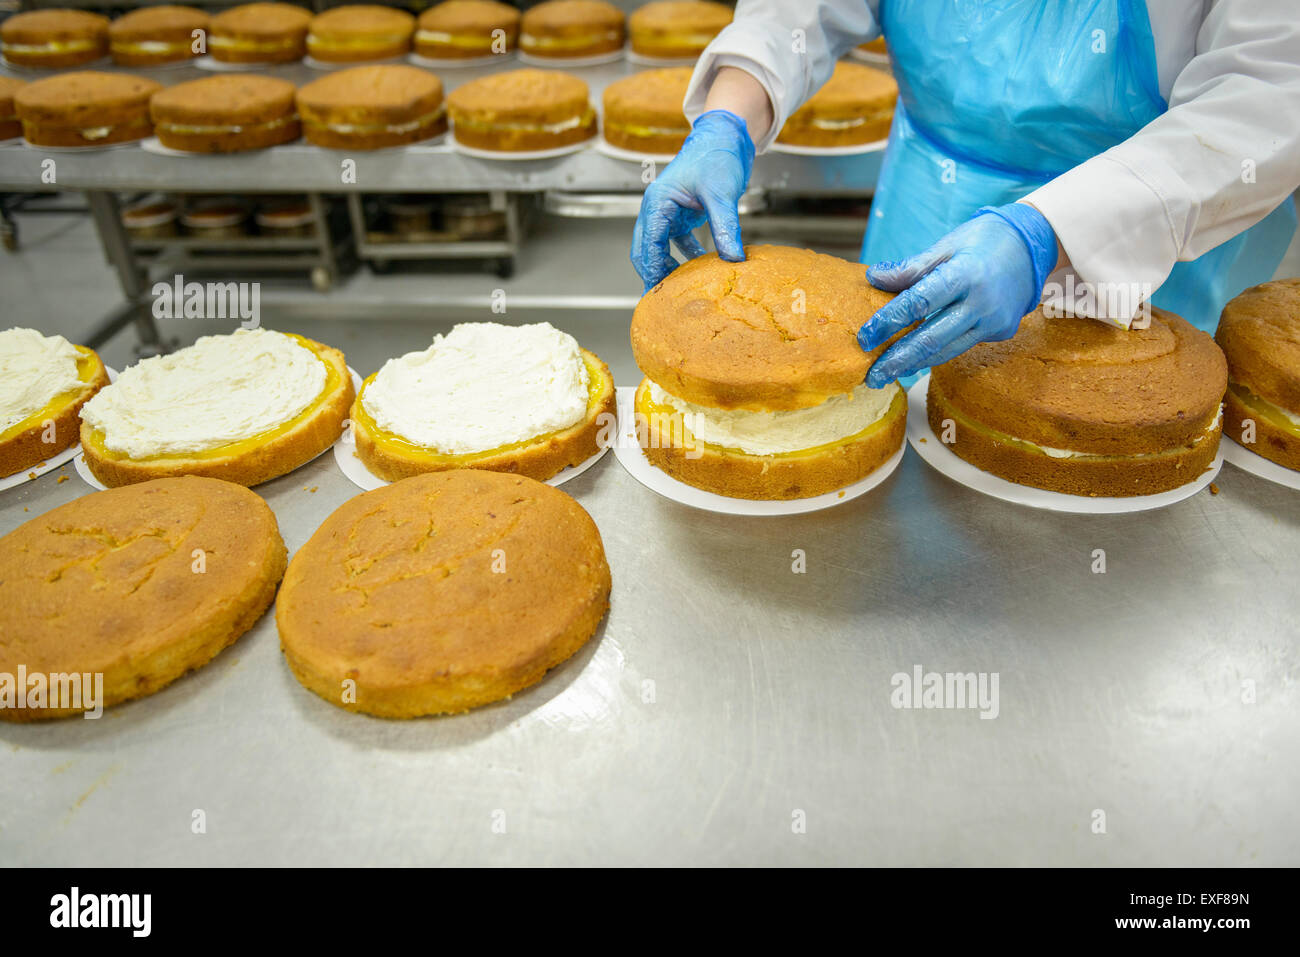 Female worker places top on cake in cake factory, close up - Stock Image